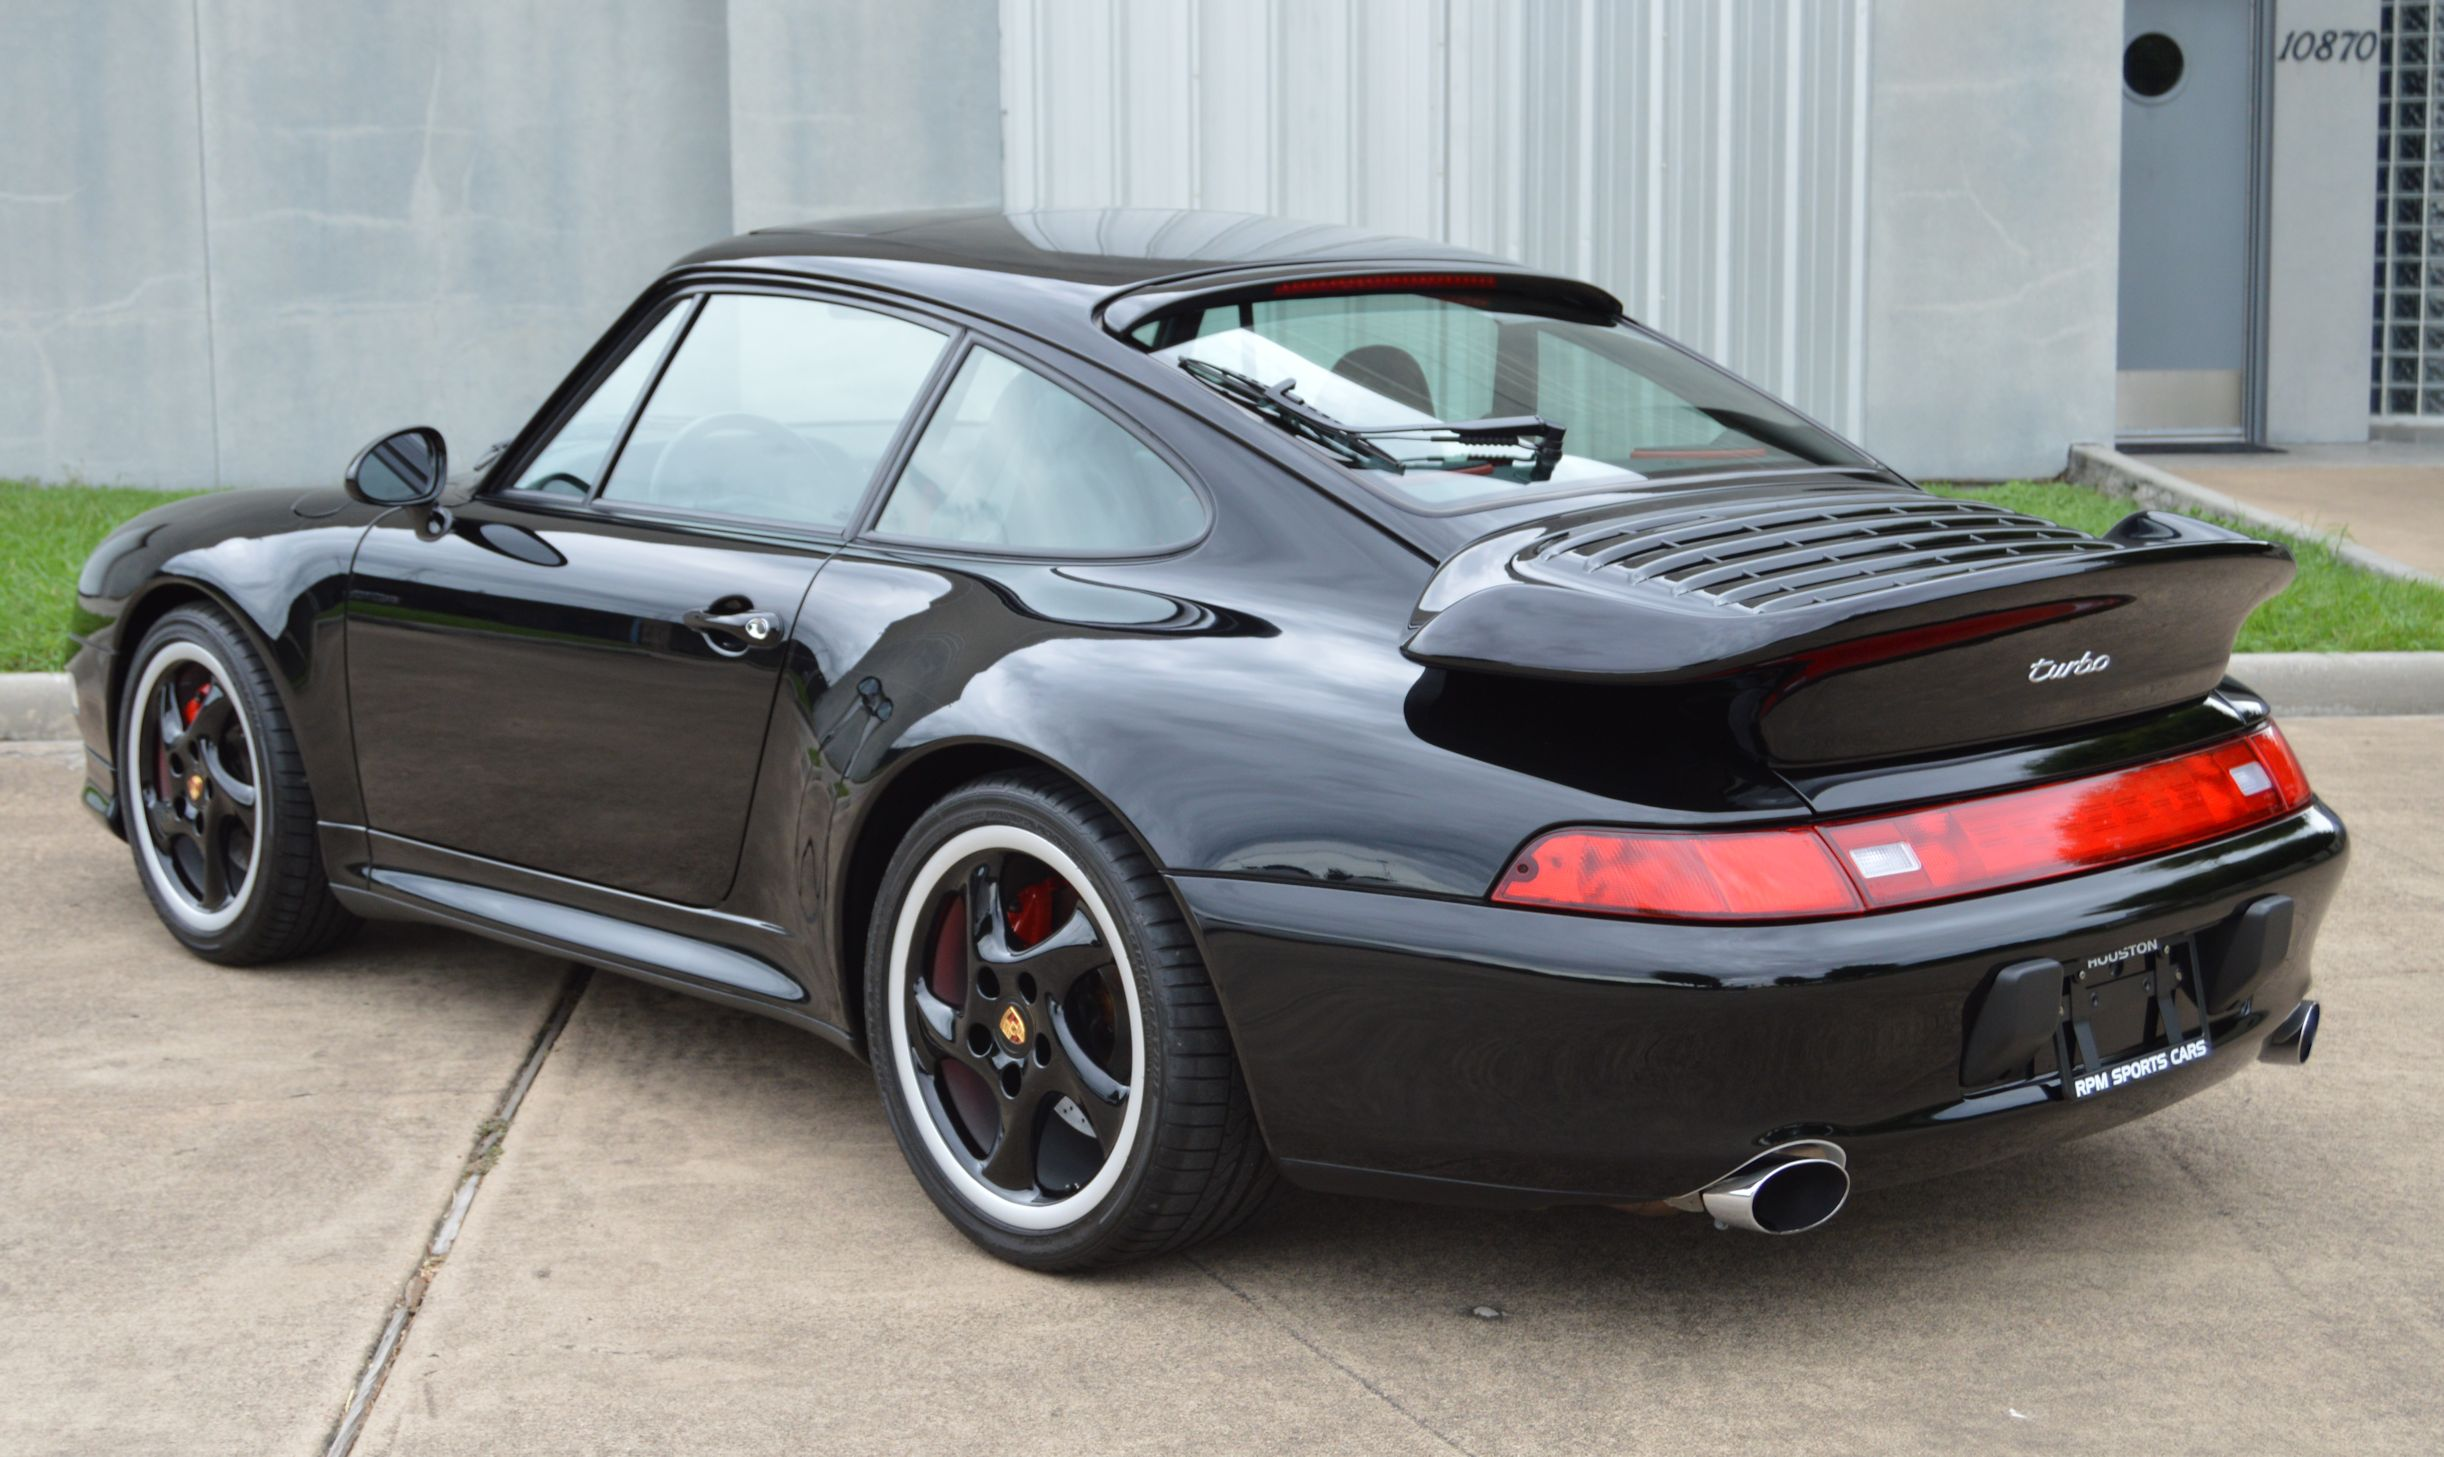 Cars 2 Wallpaper 1996 Porsche 993 Turbo